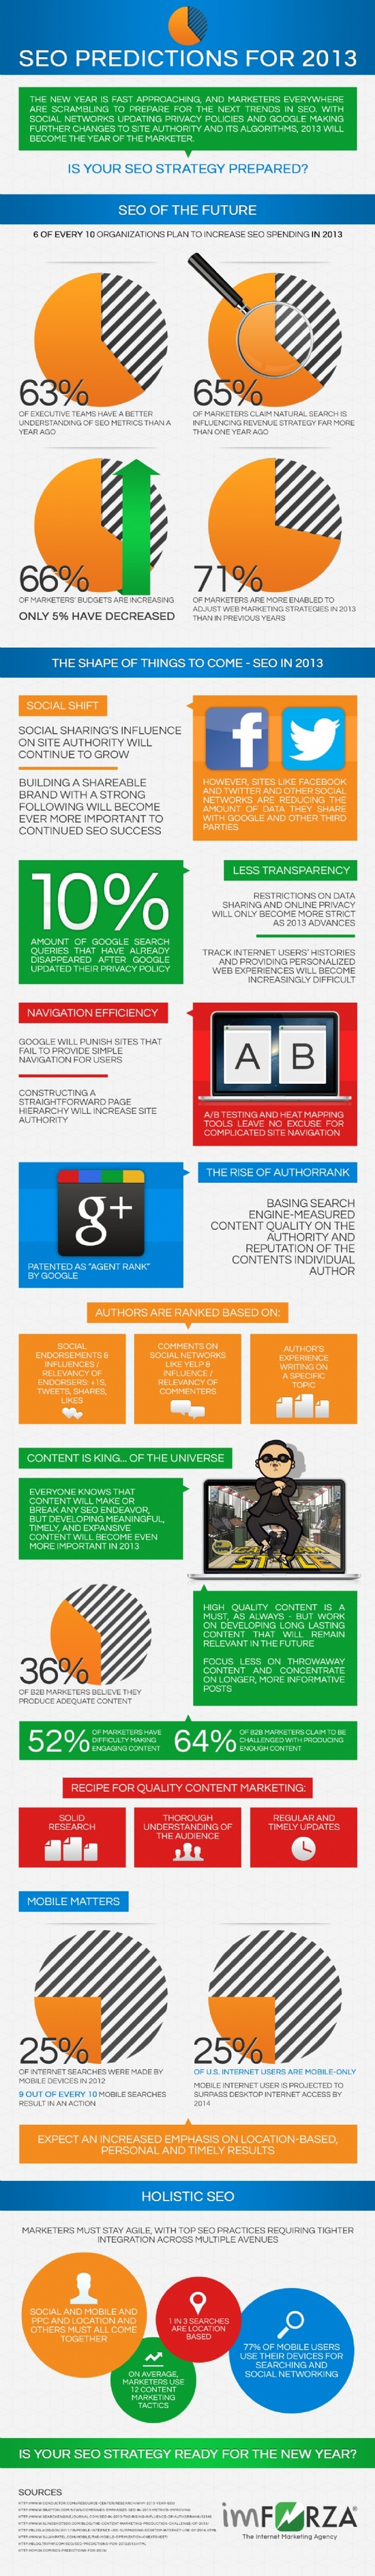 seo predictions for 2 013 infographic